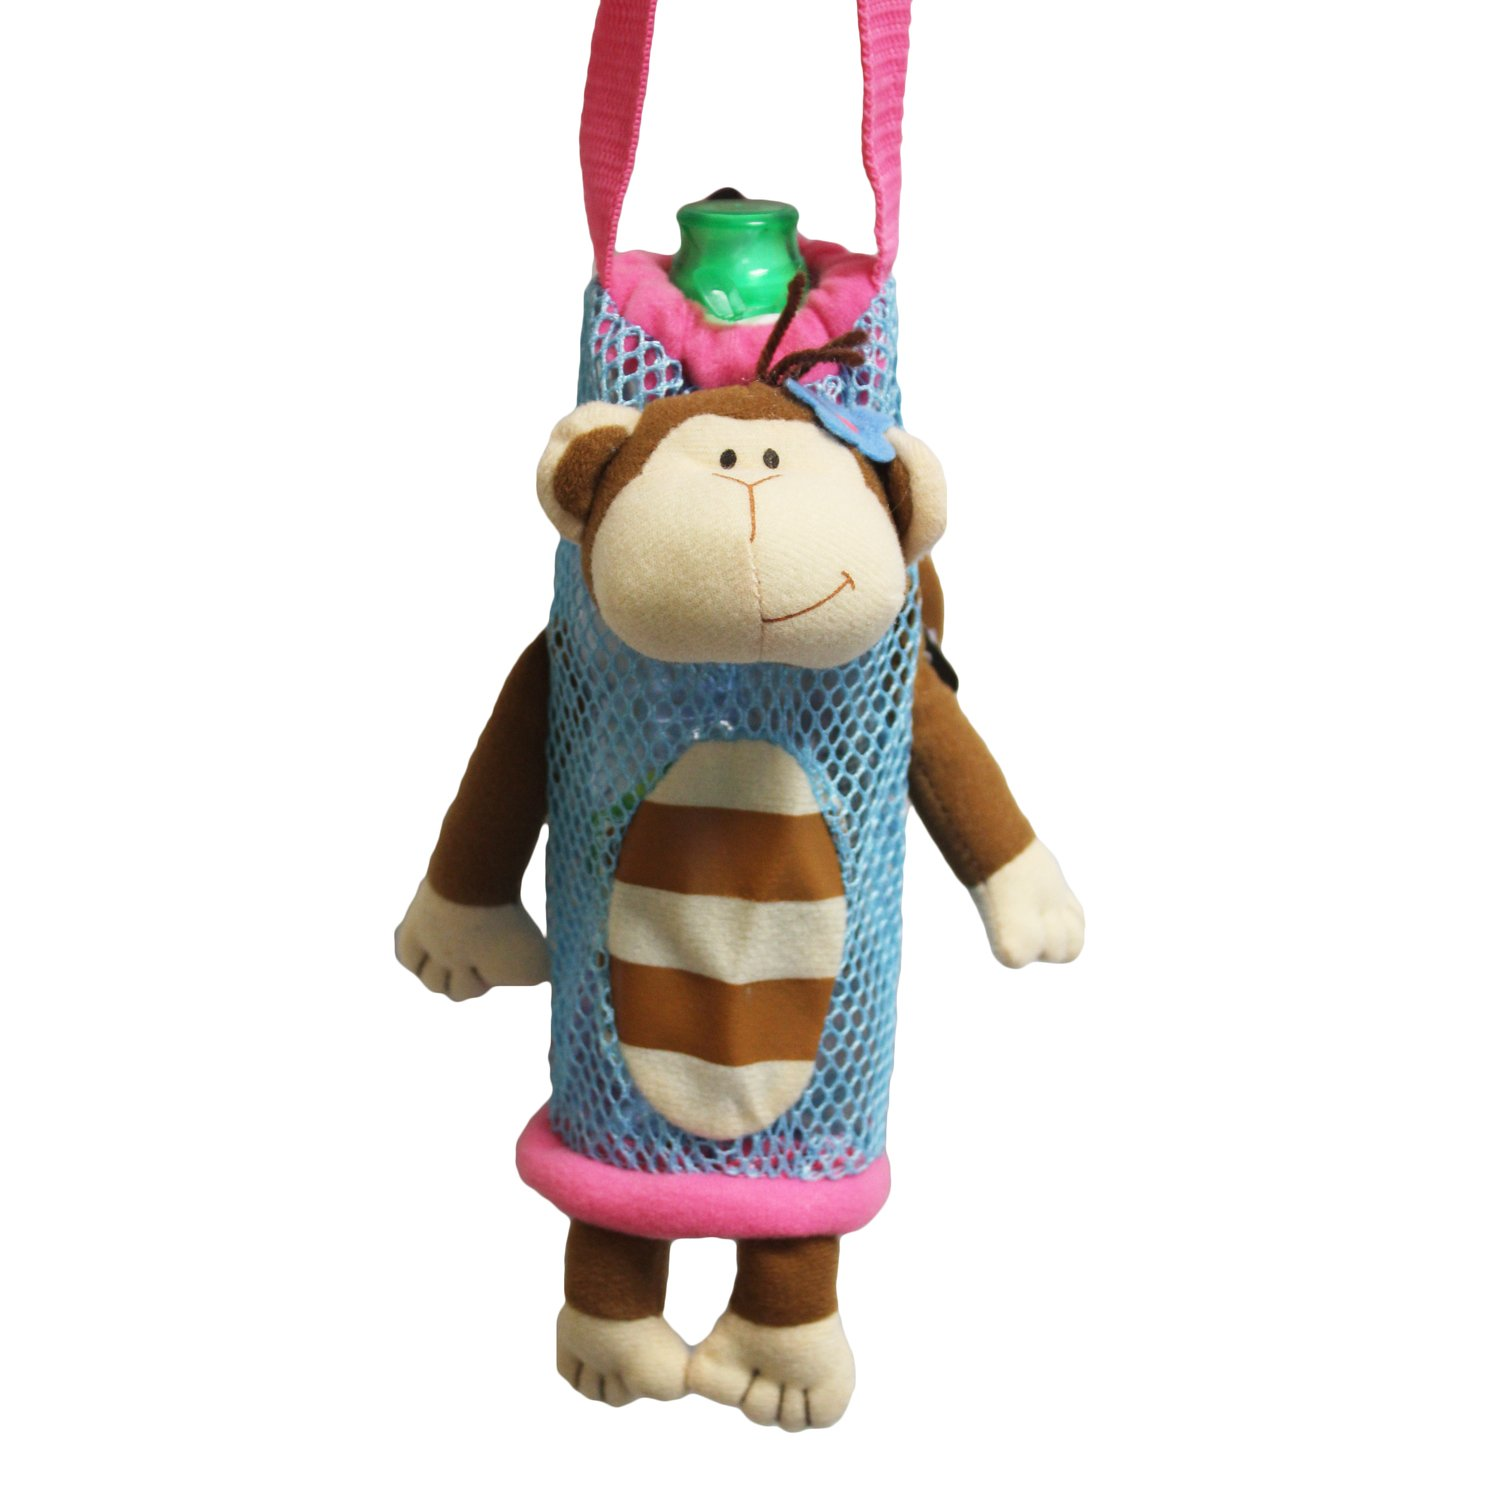 Stephen Joseph Children's Girl Monkey Bottle Holder, Polyester, Blue, 8.9 x 7.5 x 18.42 cm